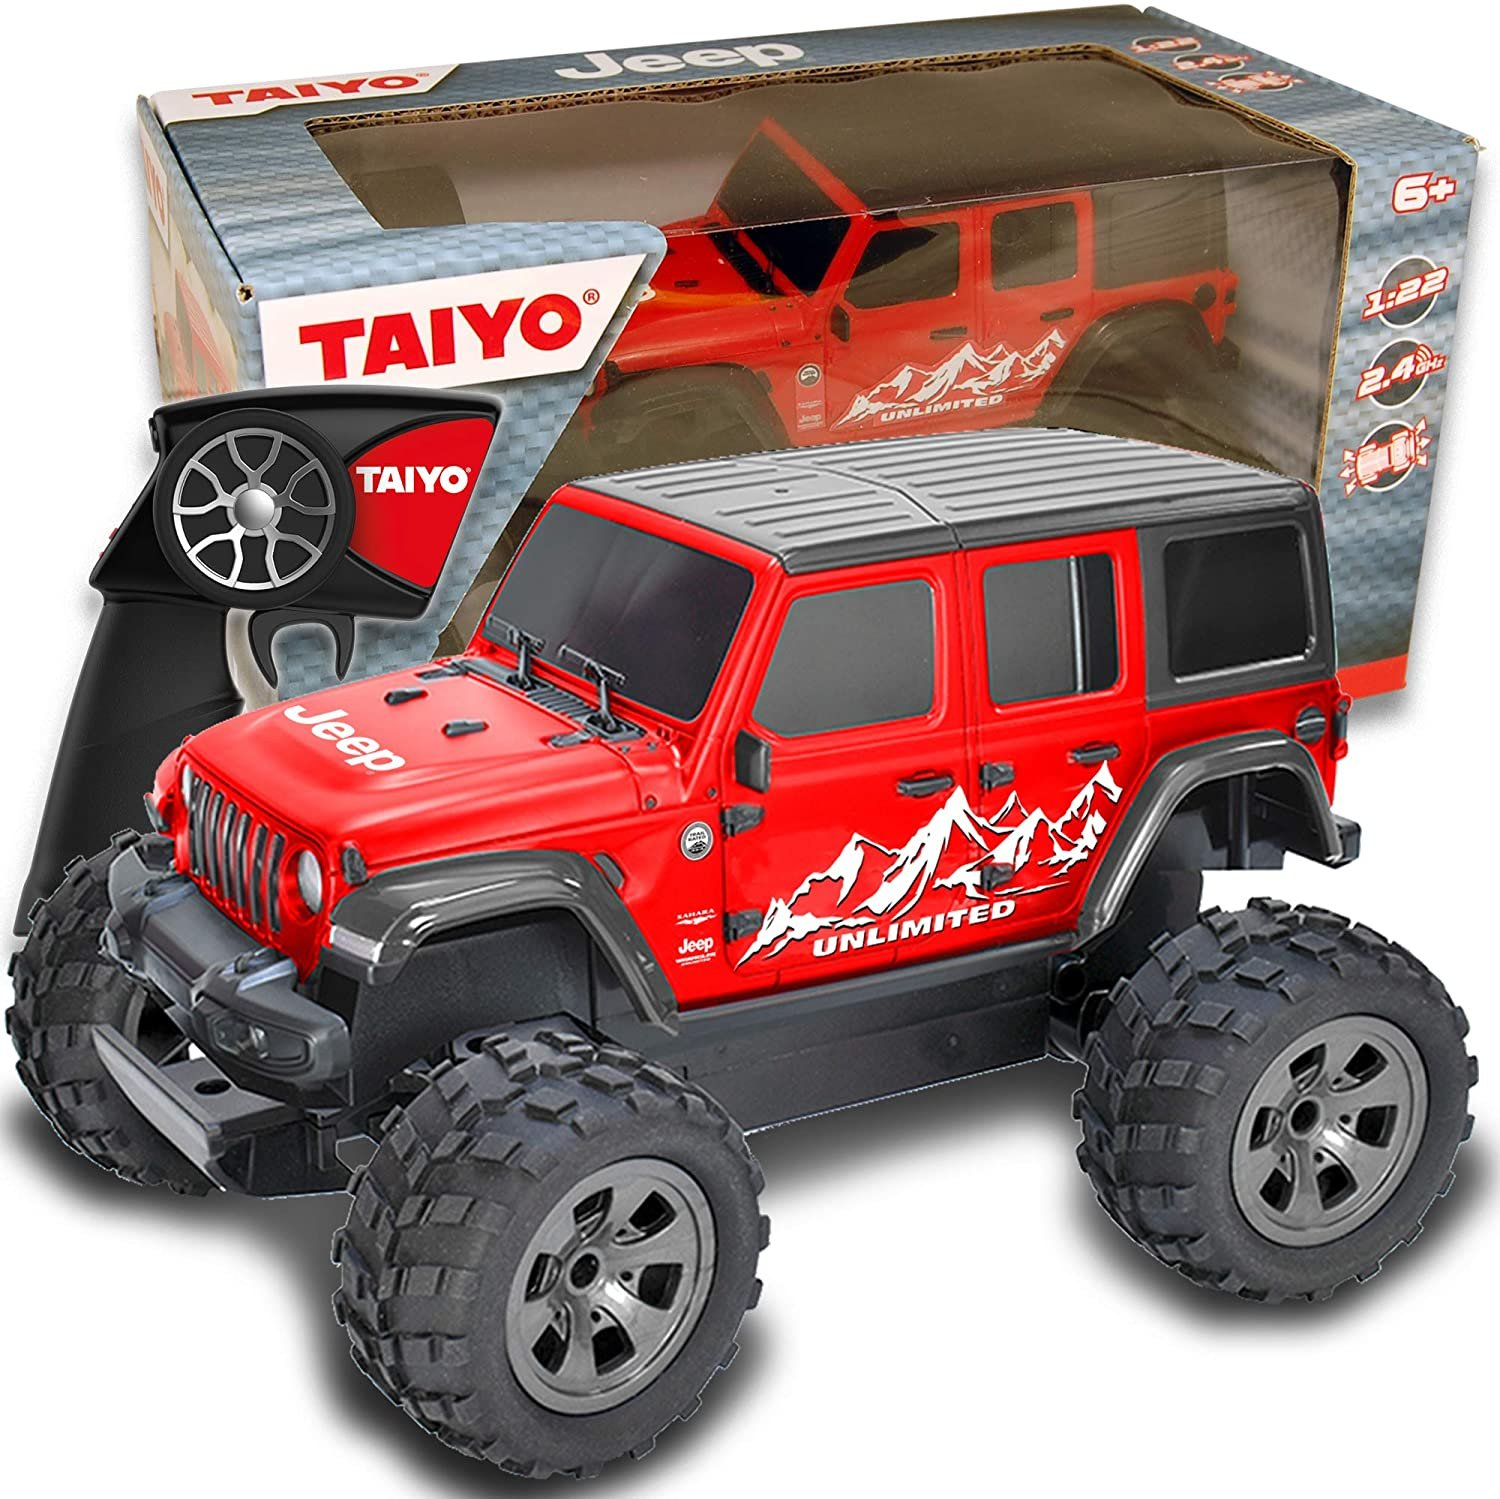 Taiyo Remote Control Red Jeep Wrangler 1:22 Scale